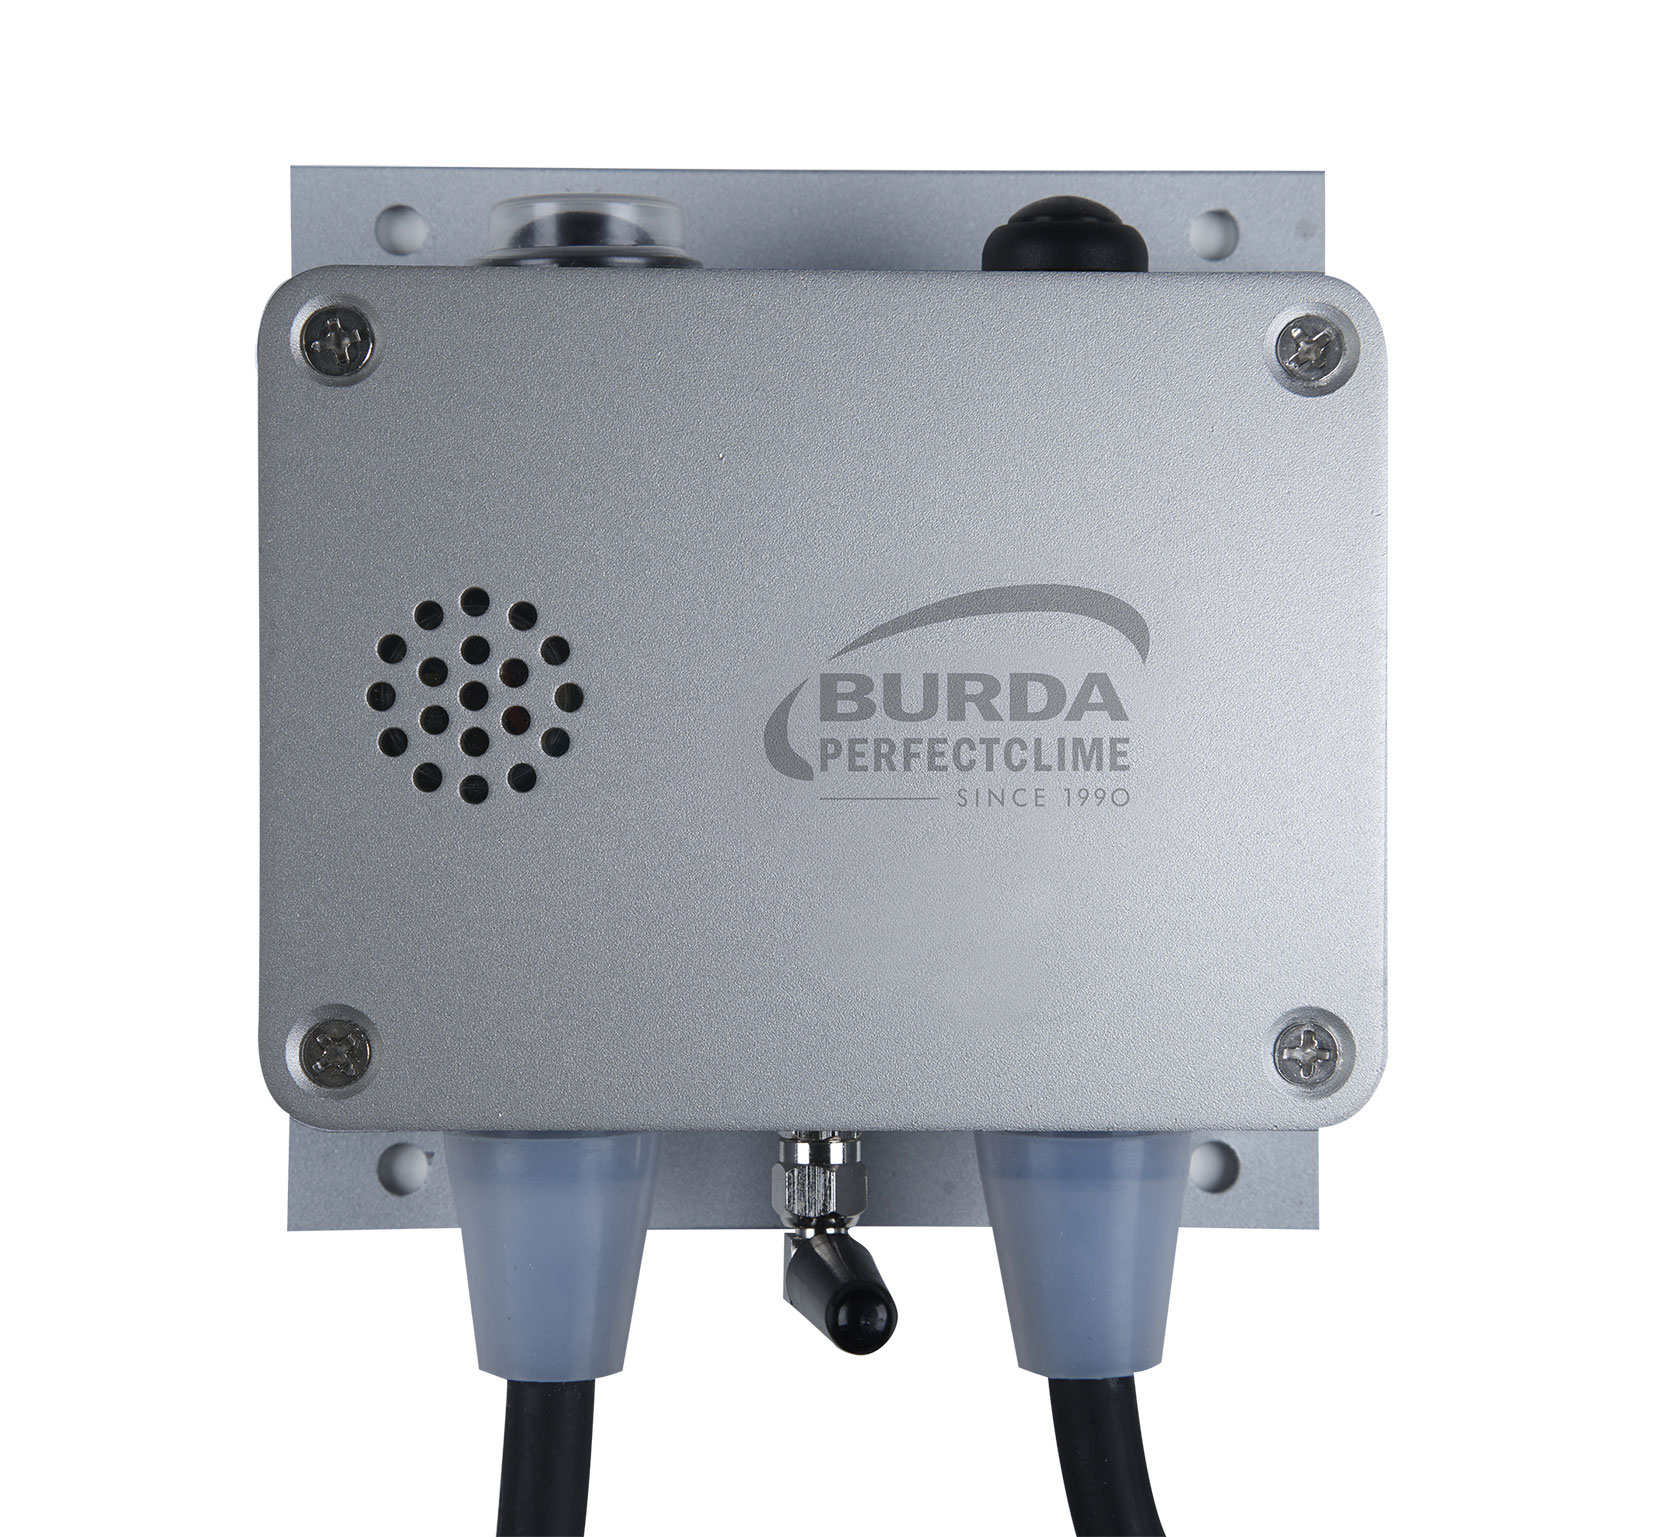 Burda Bluetooth Dimmer IP65 3kW Alu Bild 1